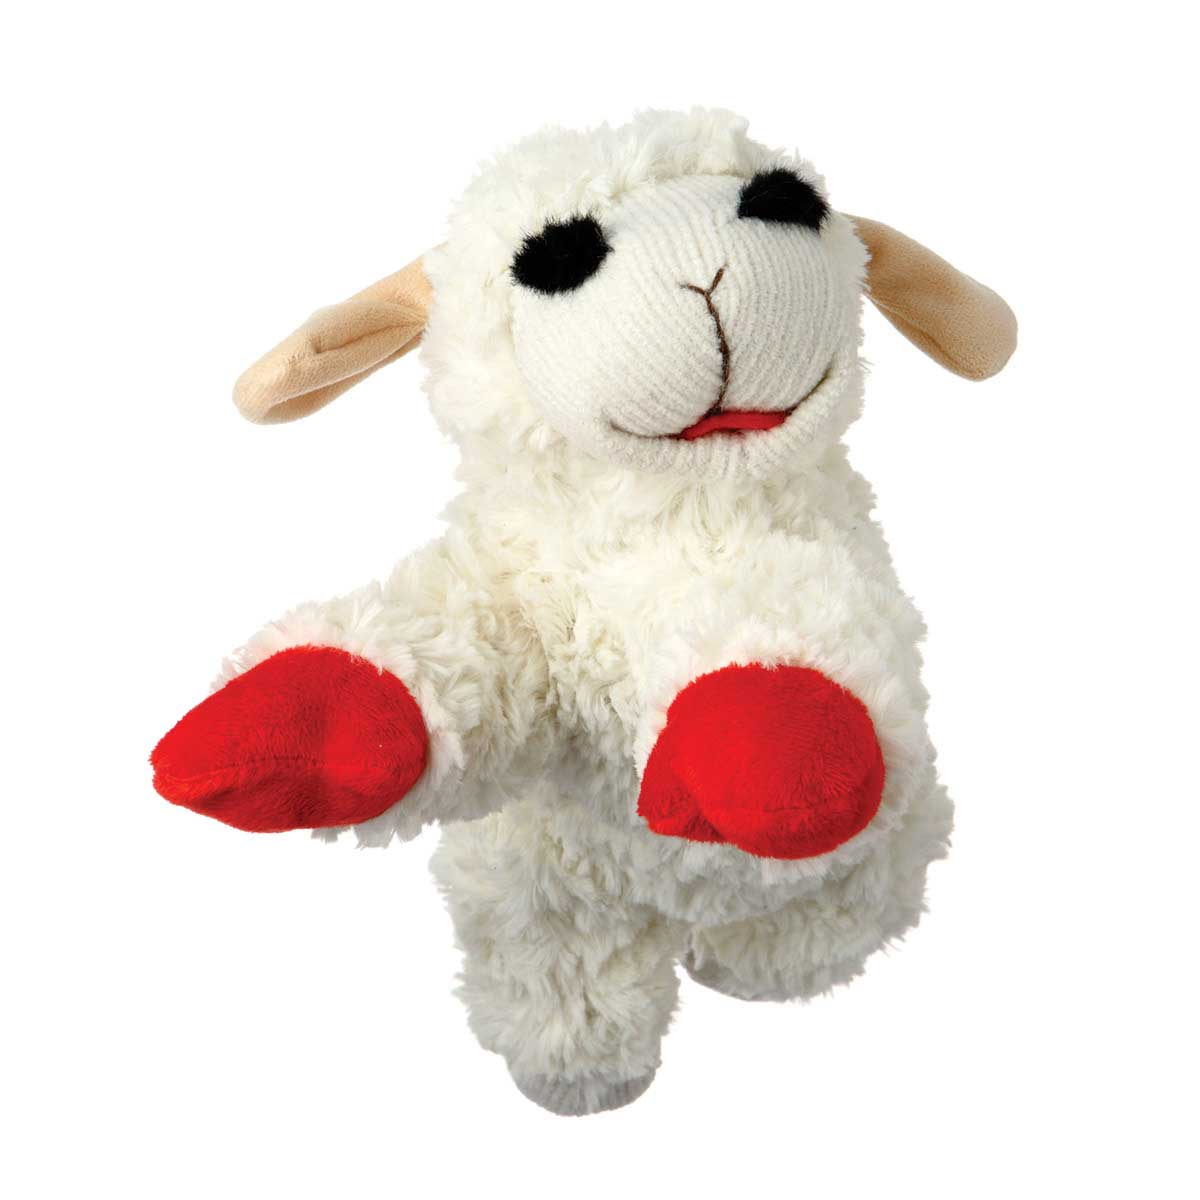 Multipet Lamb Chop Jumbo 24 inch Plush Toy for Large and Extra Large Dogs